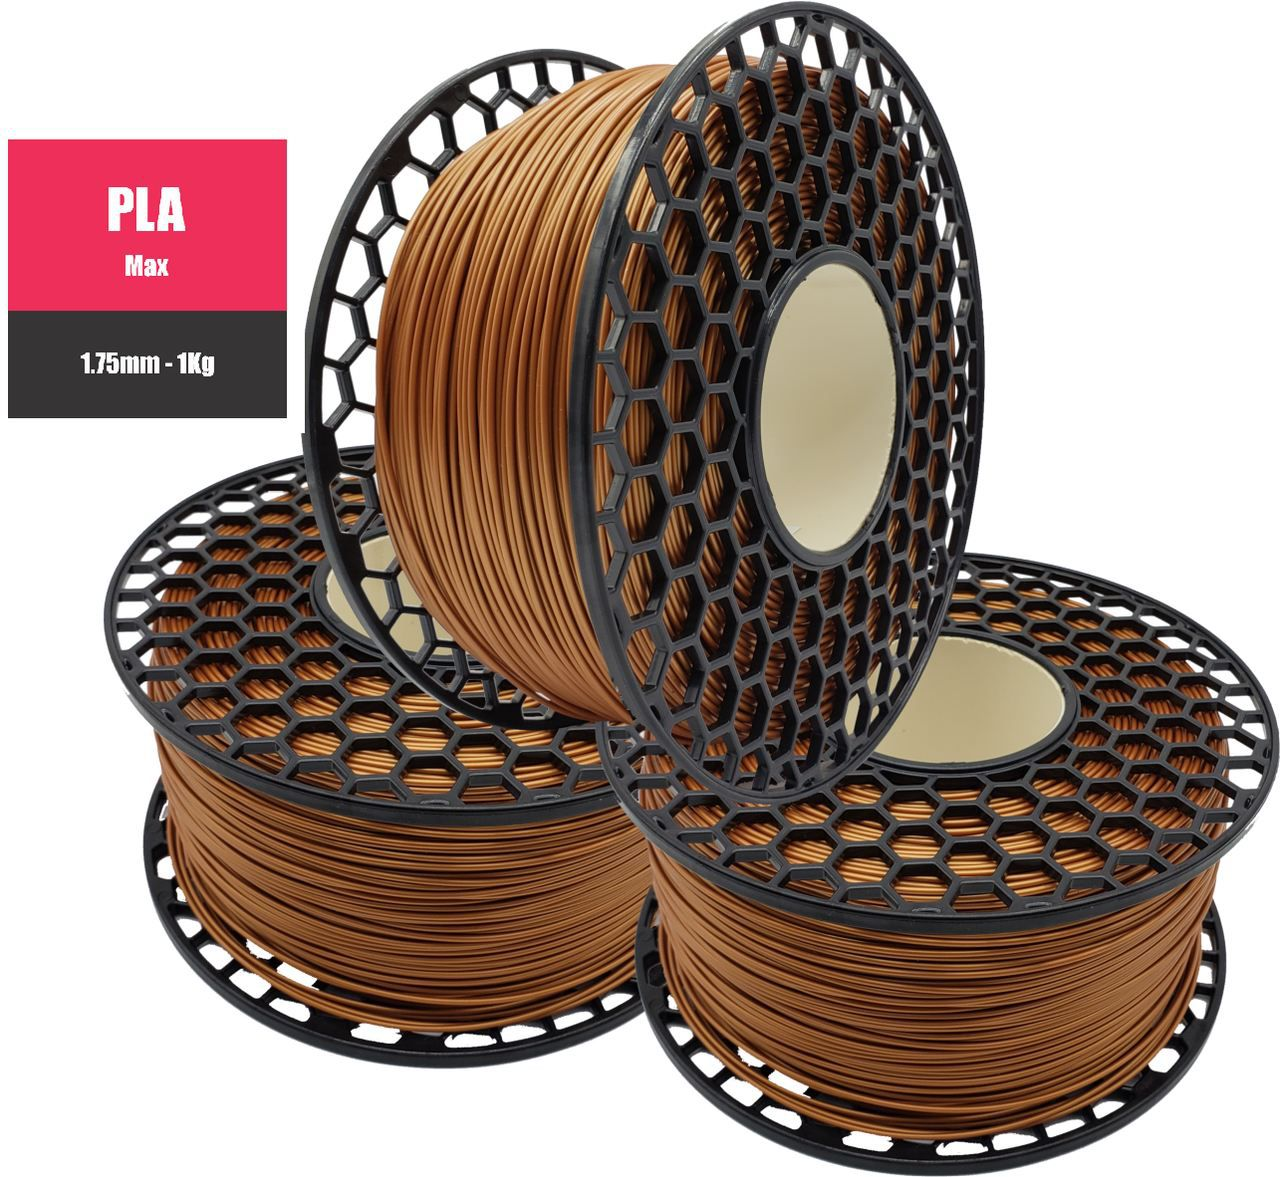 Filamento PLA Max - Cobre - National 3D - 1.75mm - 1KG